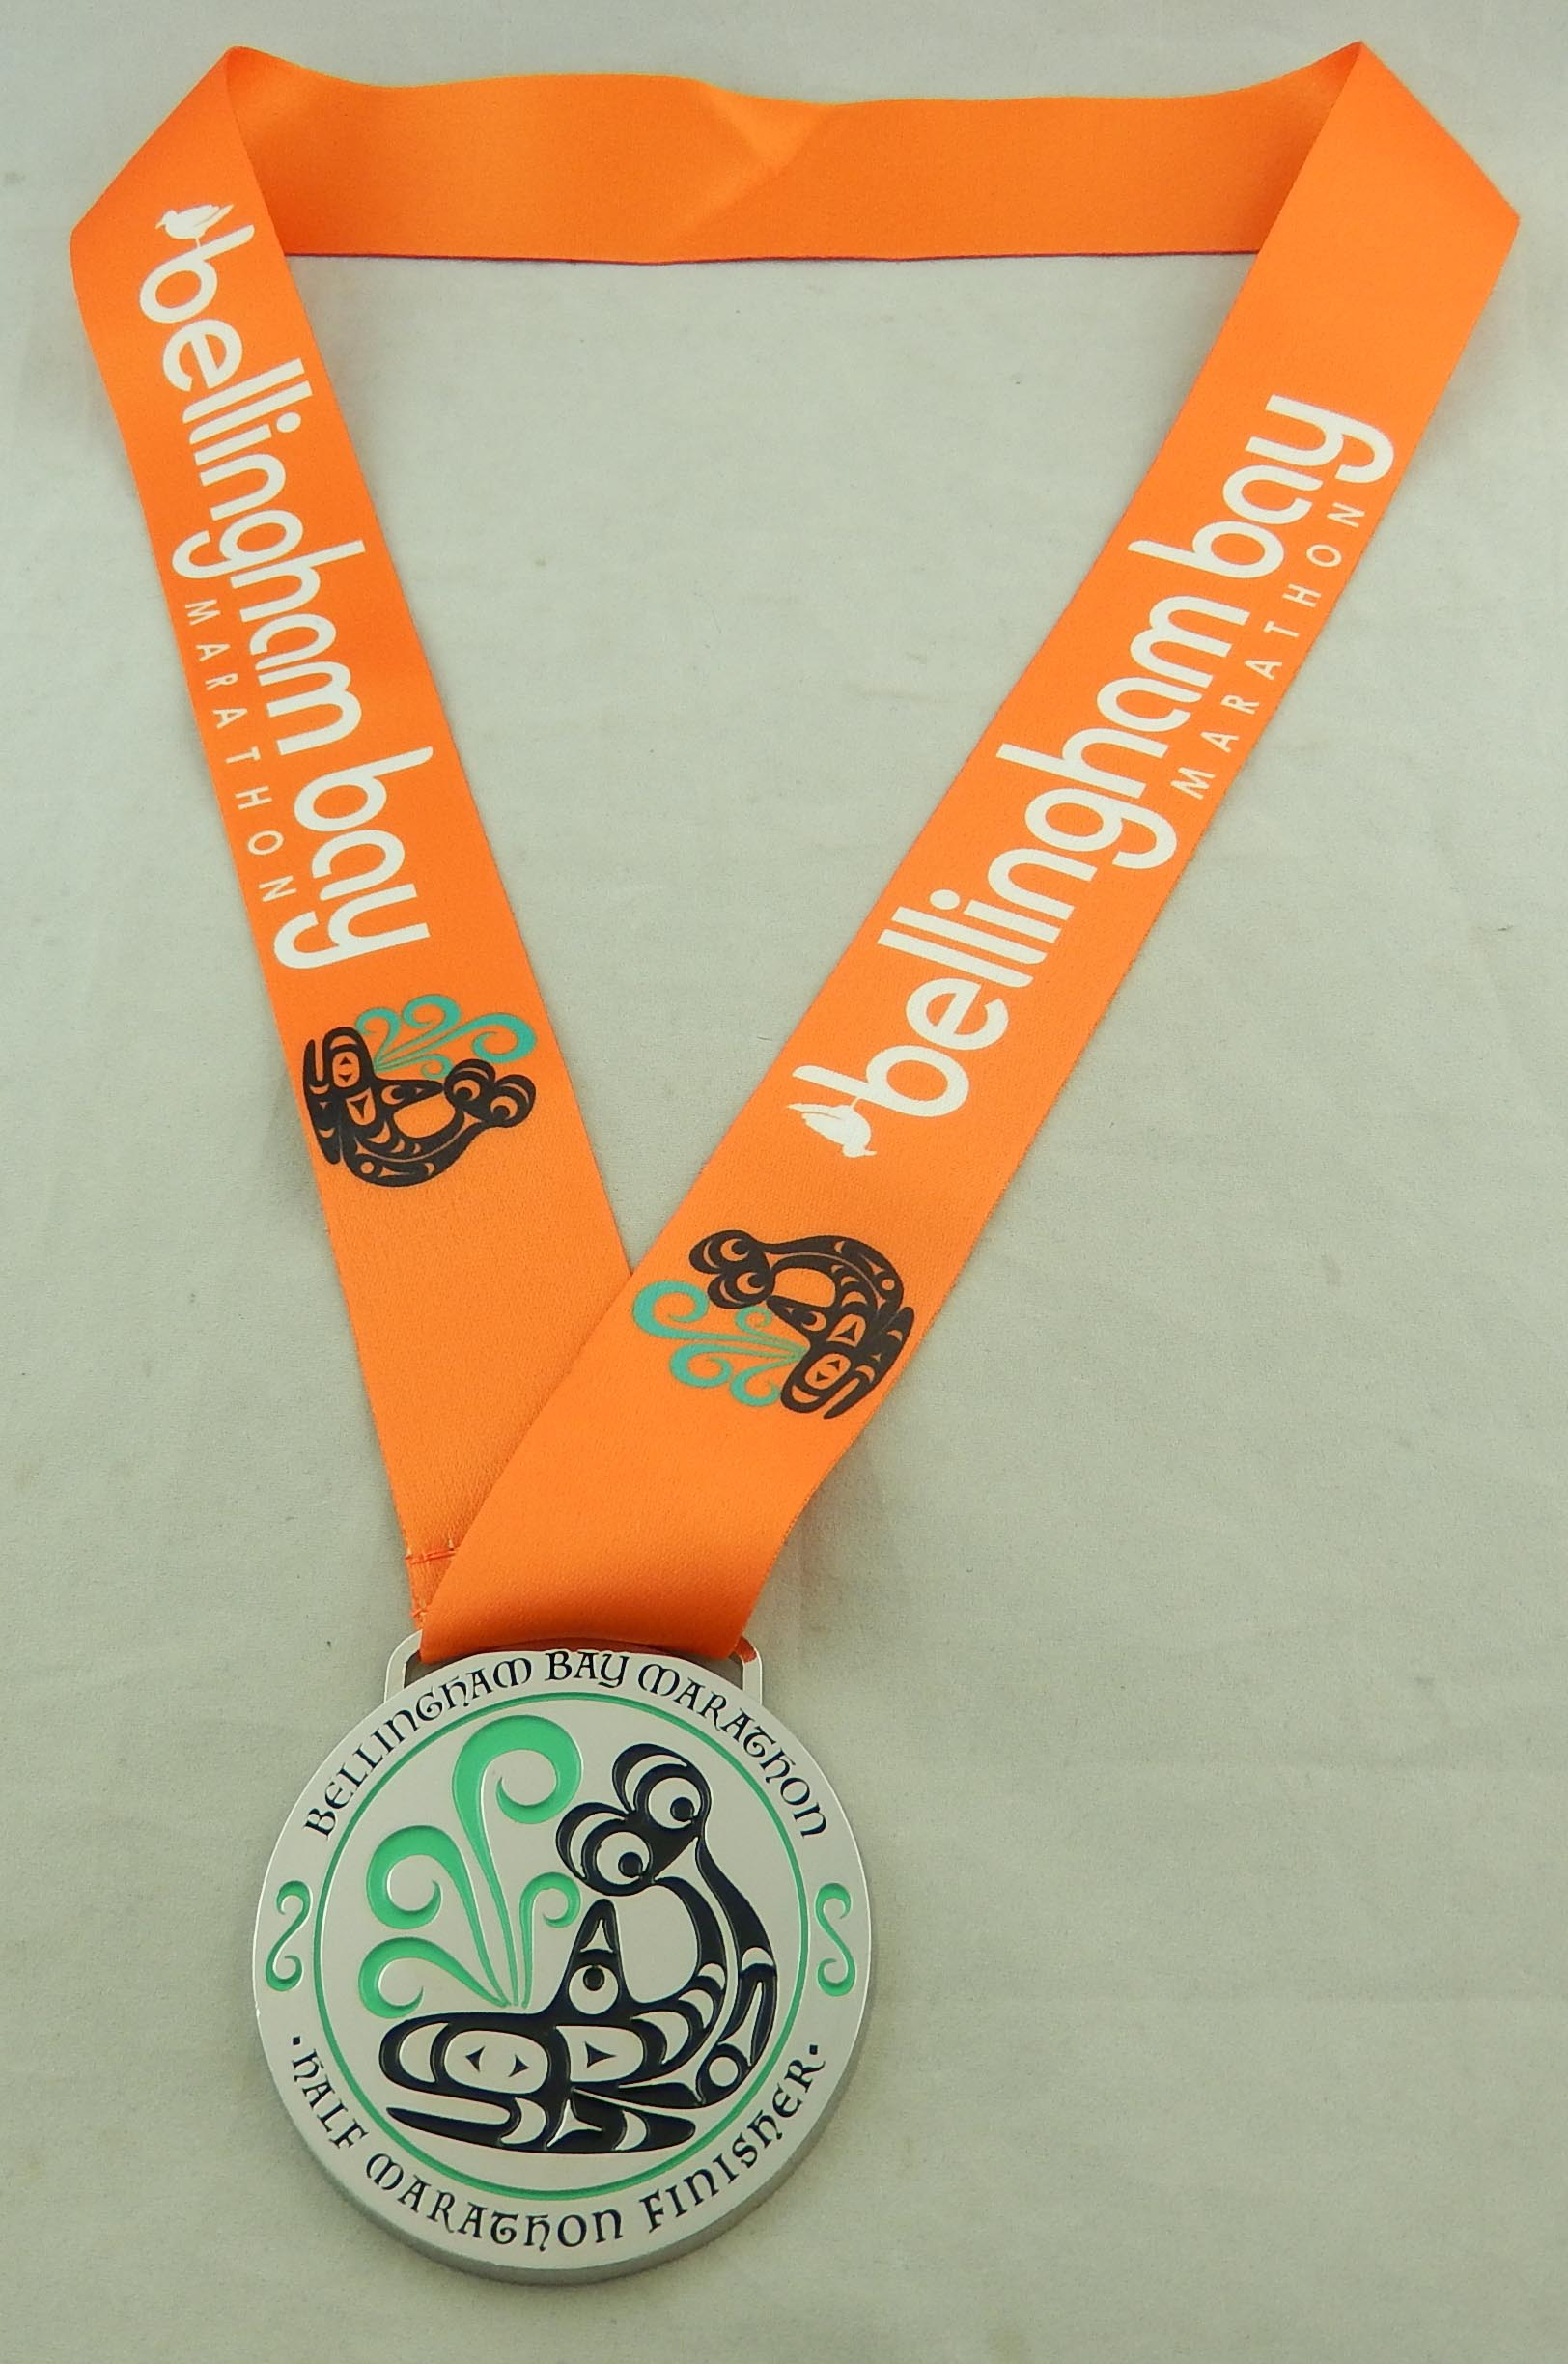 Bellingham Bay half medal with ribbon 8-12